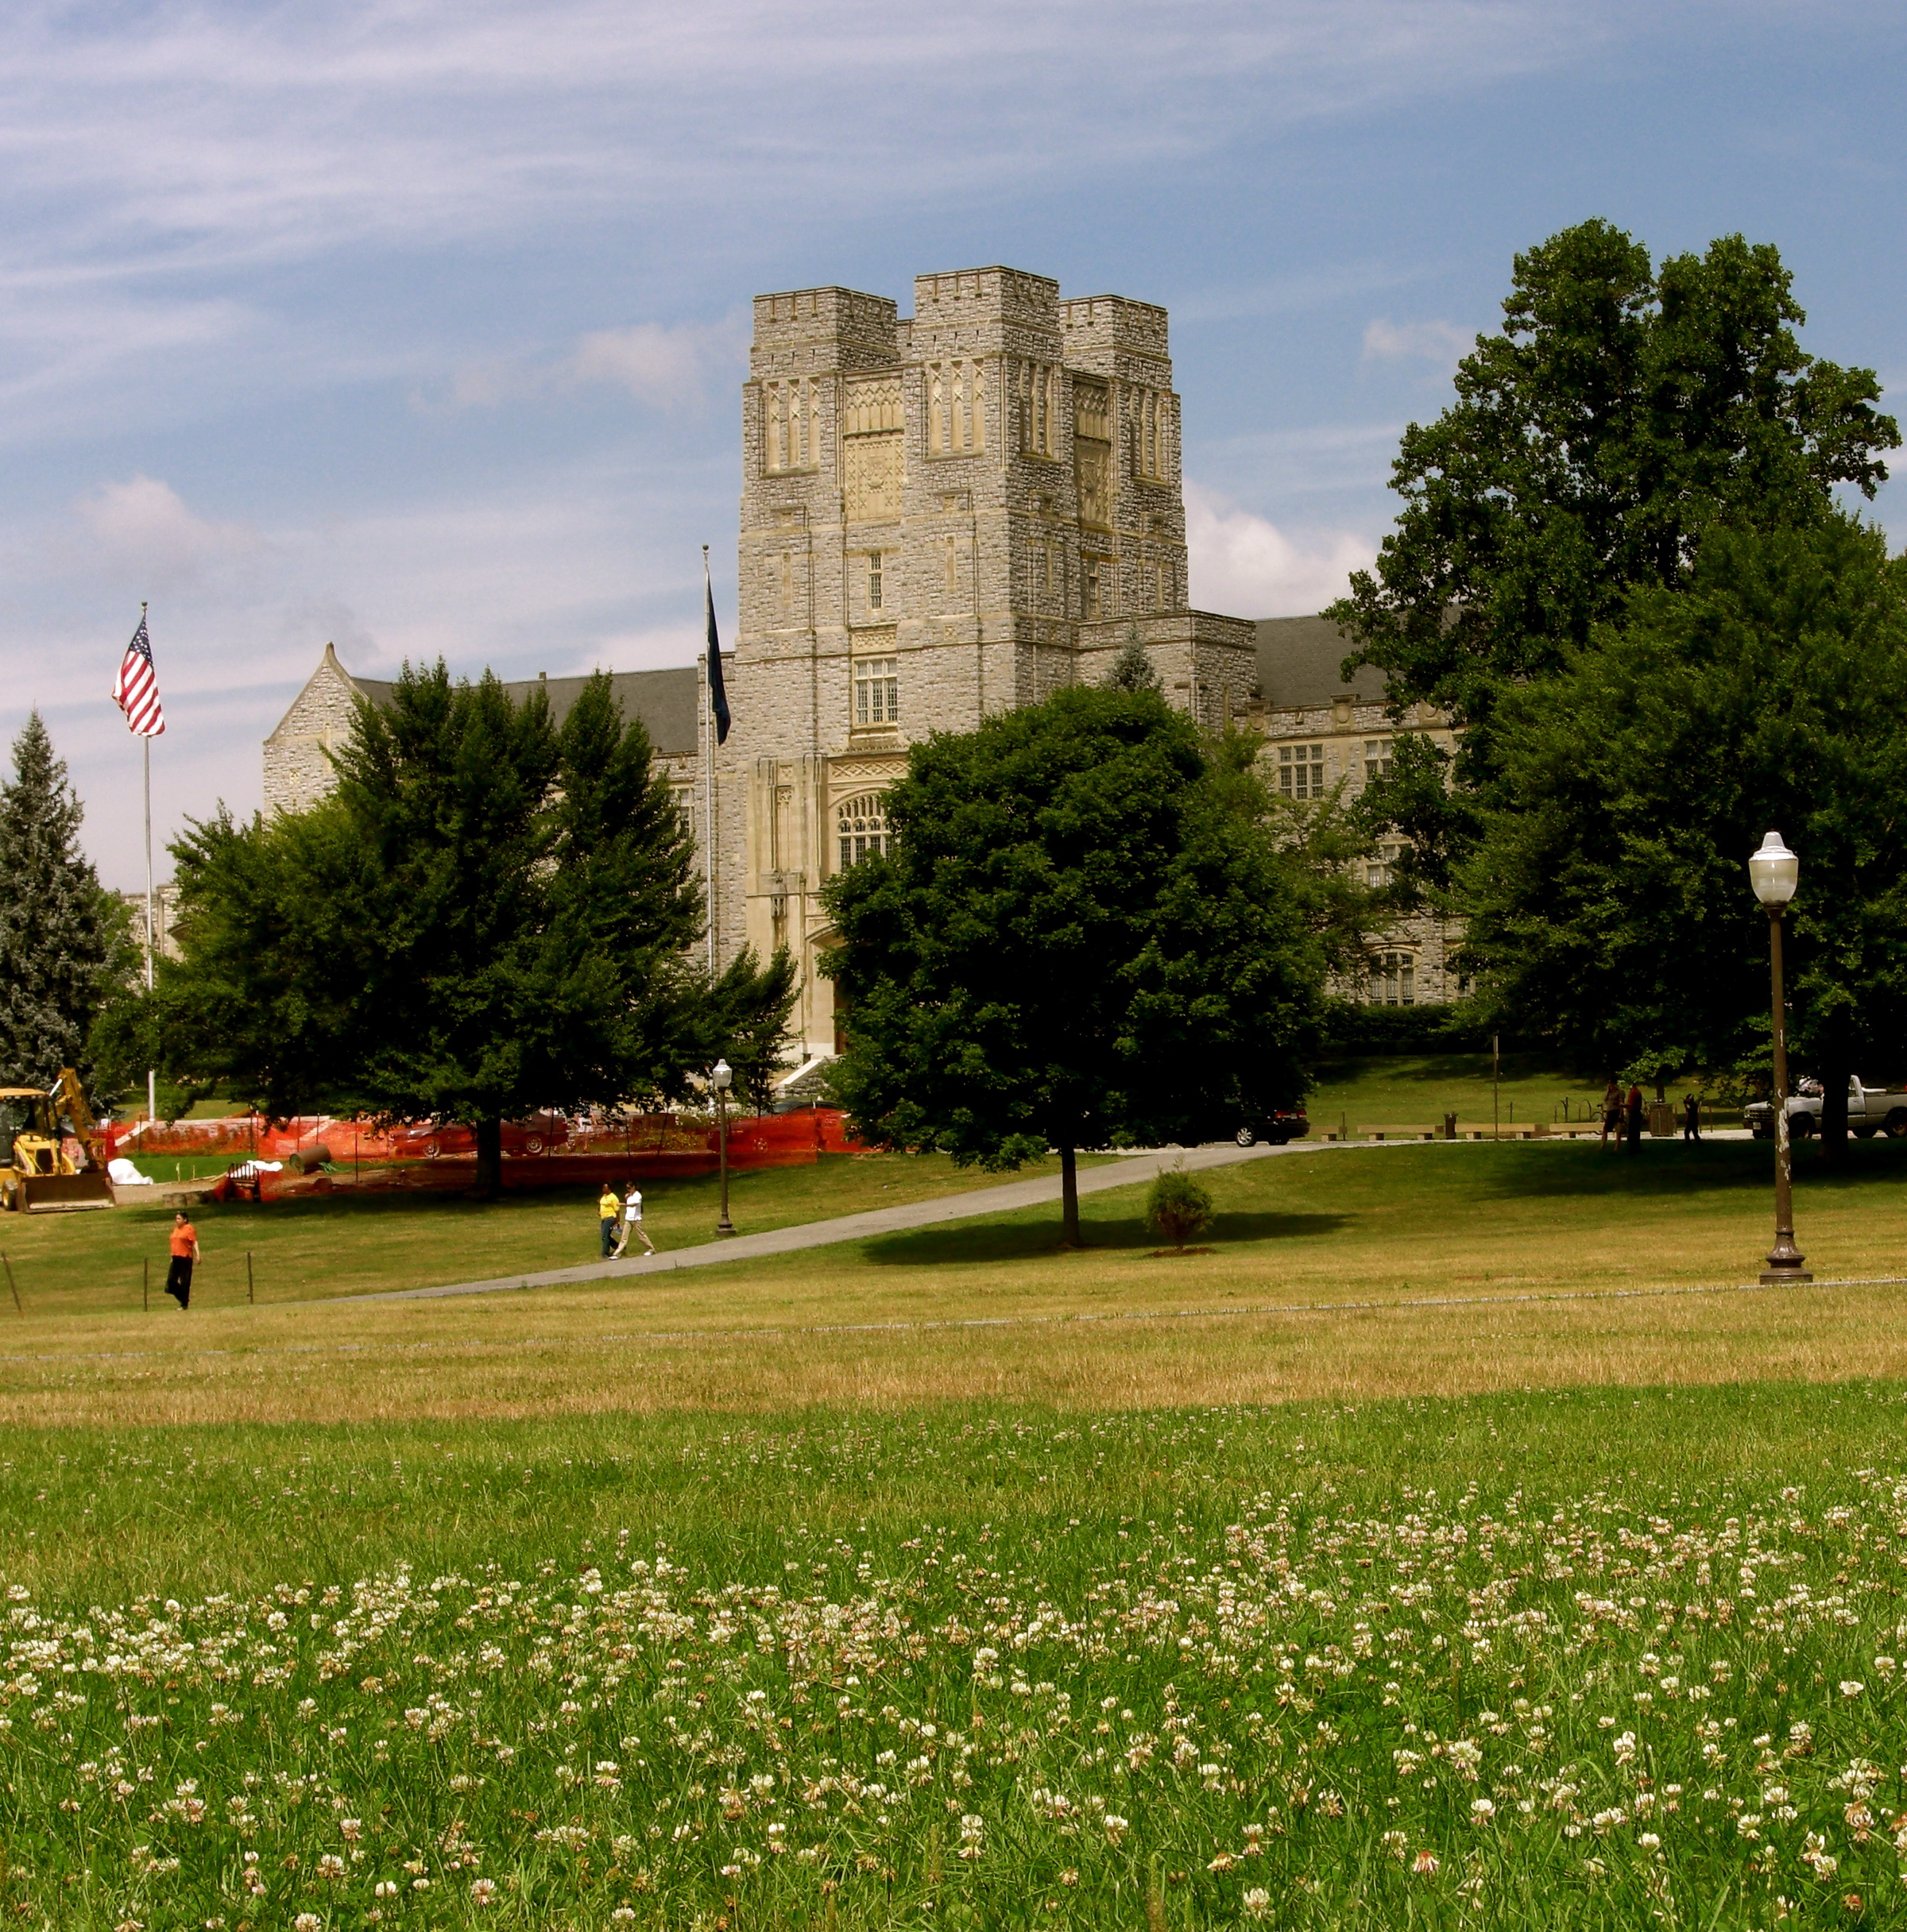 View of Burruss from the Drillfield; image by EpicV27 - Own work, GFDL, https://commons.wikimedia.org/w/index.php?curid=3497173